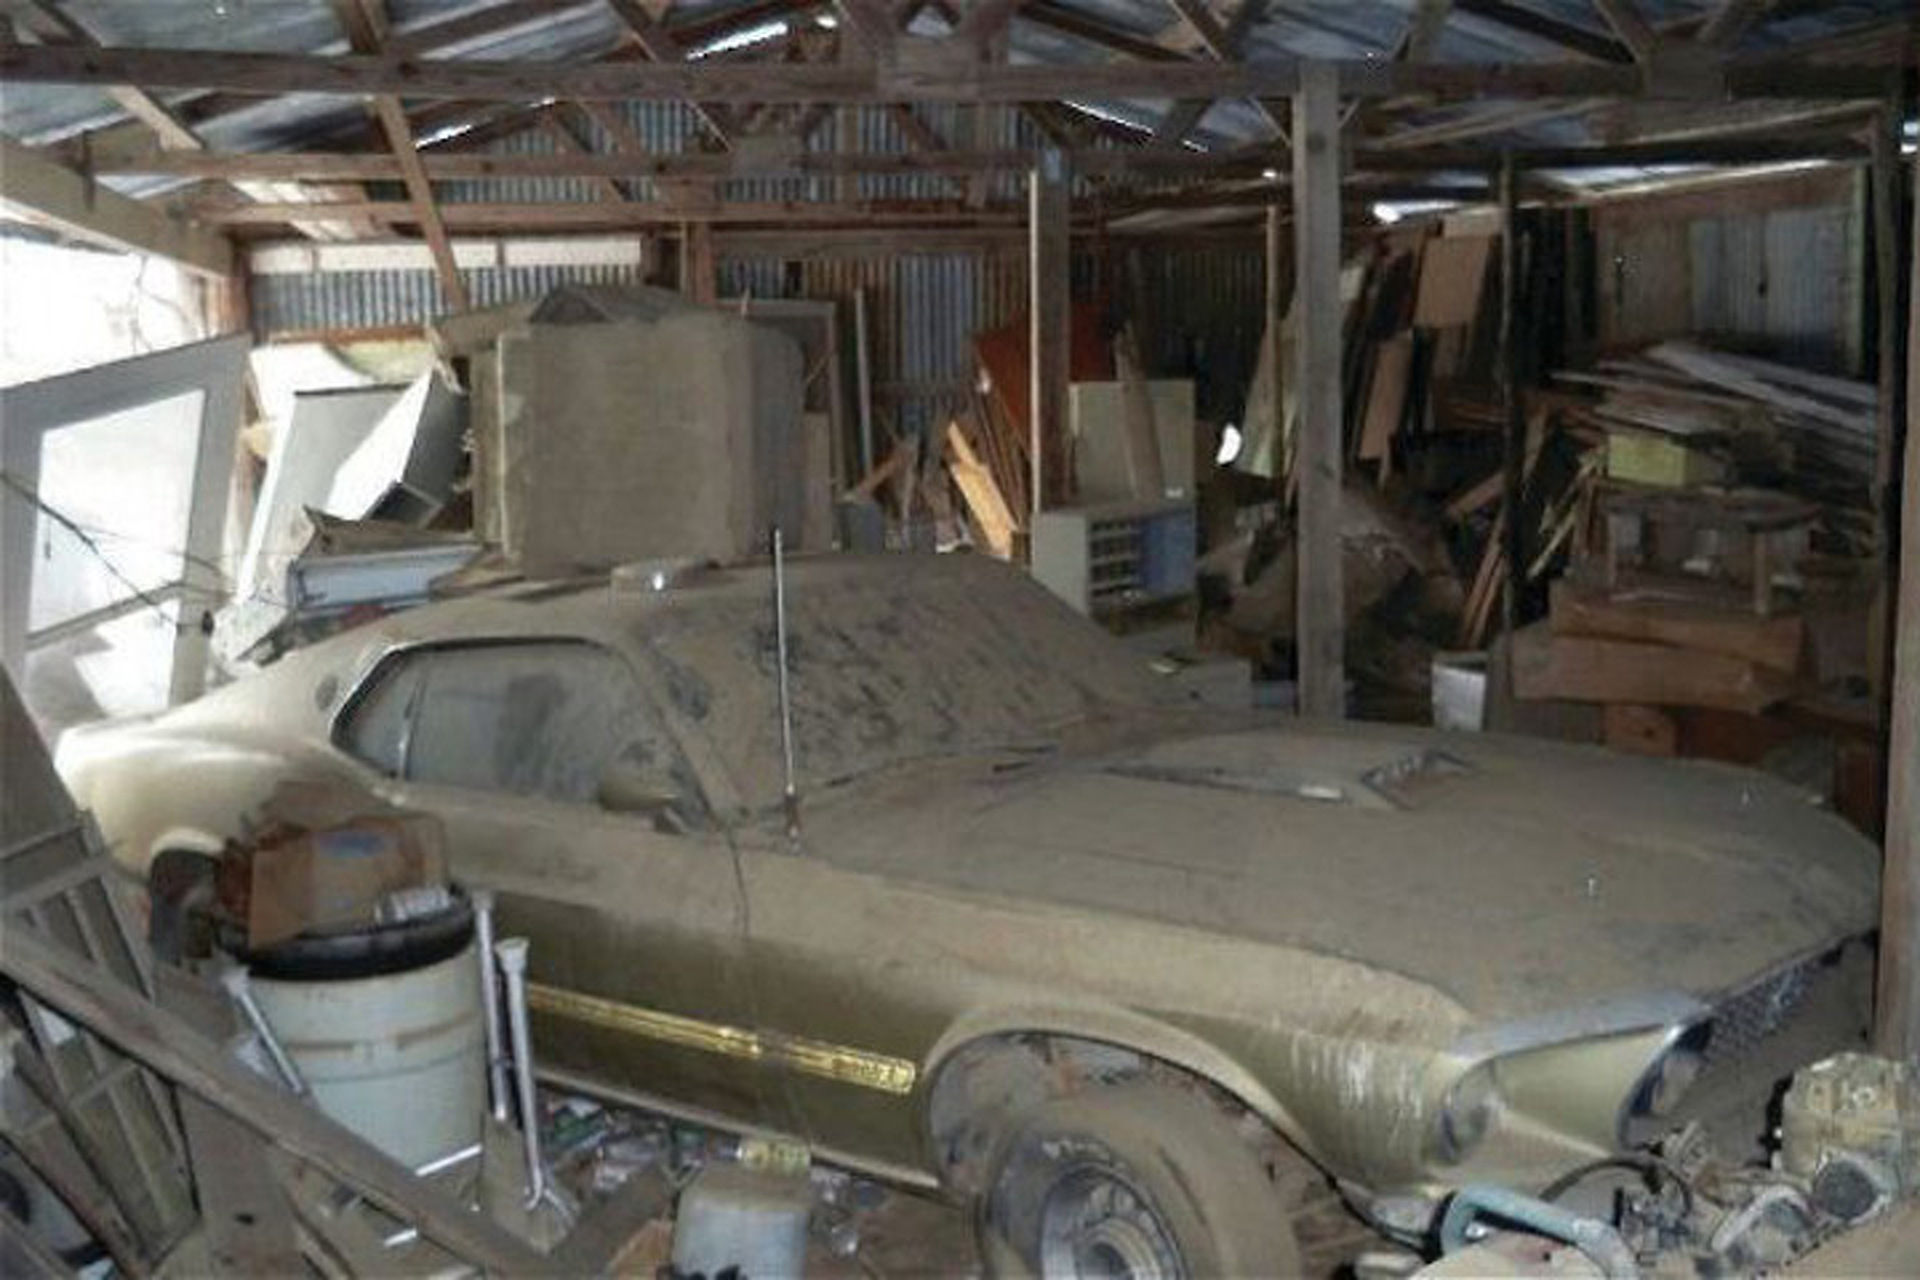 Barn find a 69 mach 1 saved from the junk pile